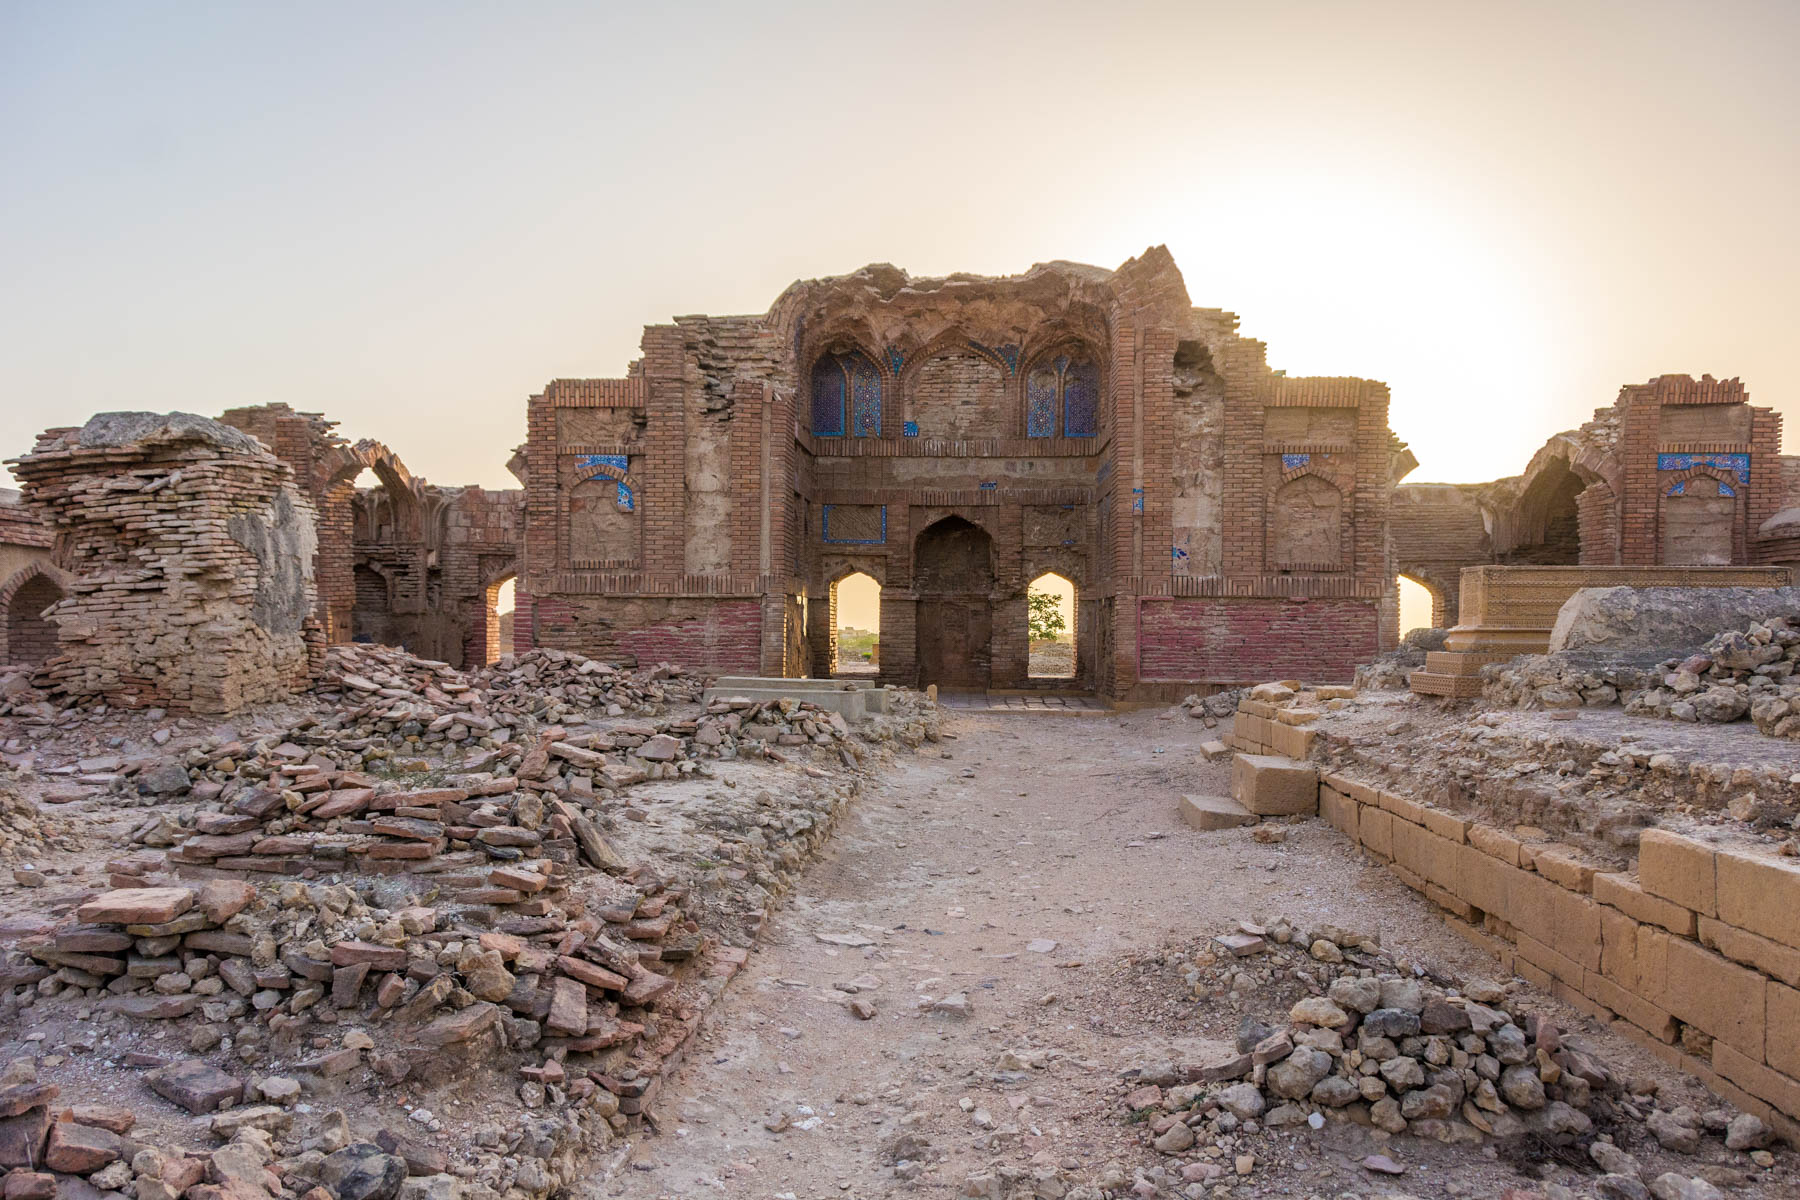 Ruins at Makli Hill in Pakistan